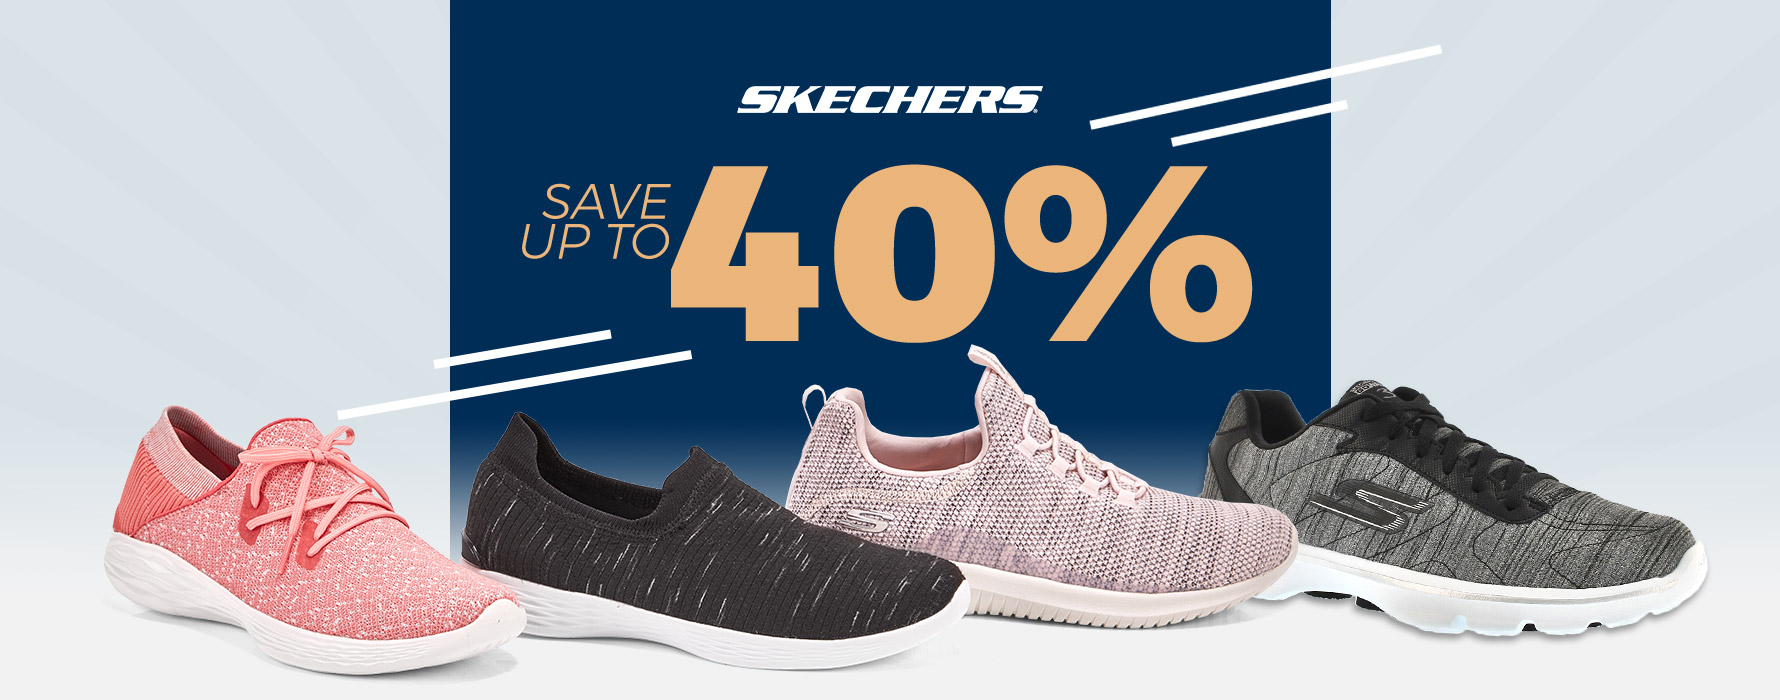 Skechers - Save up to 40%